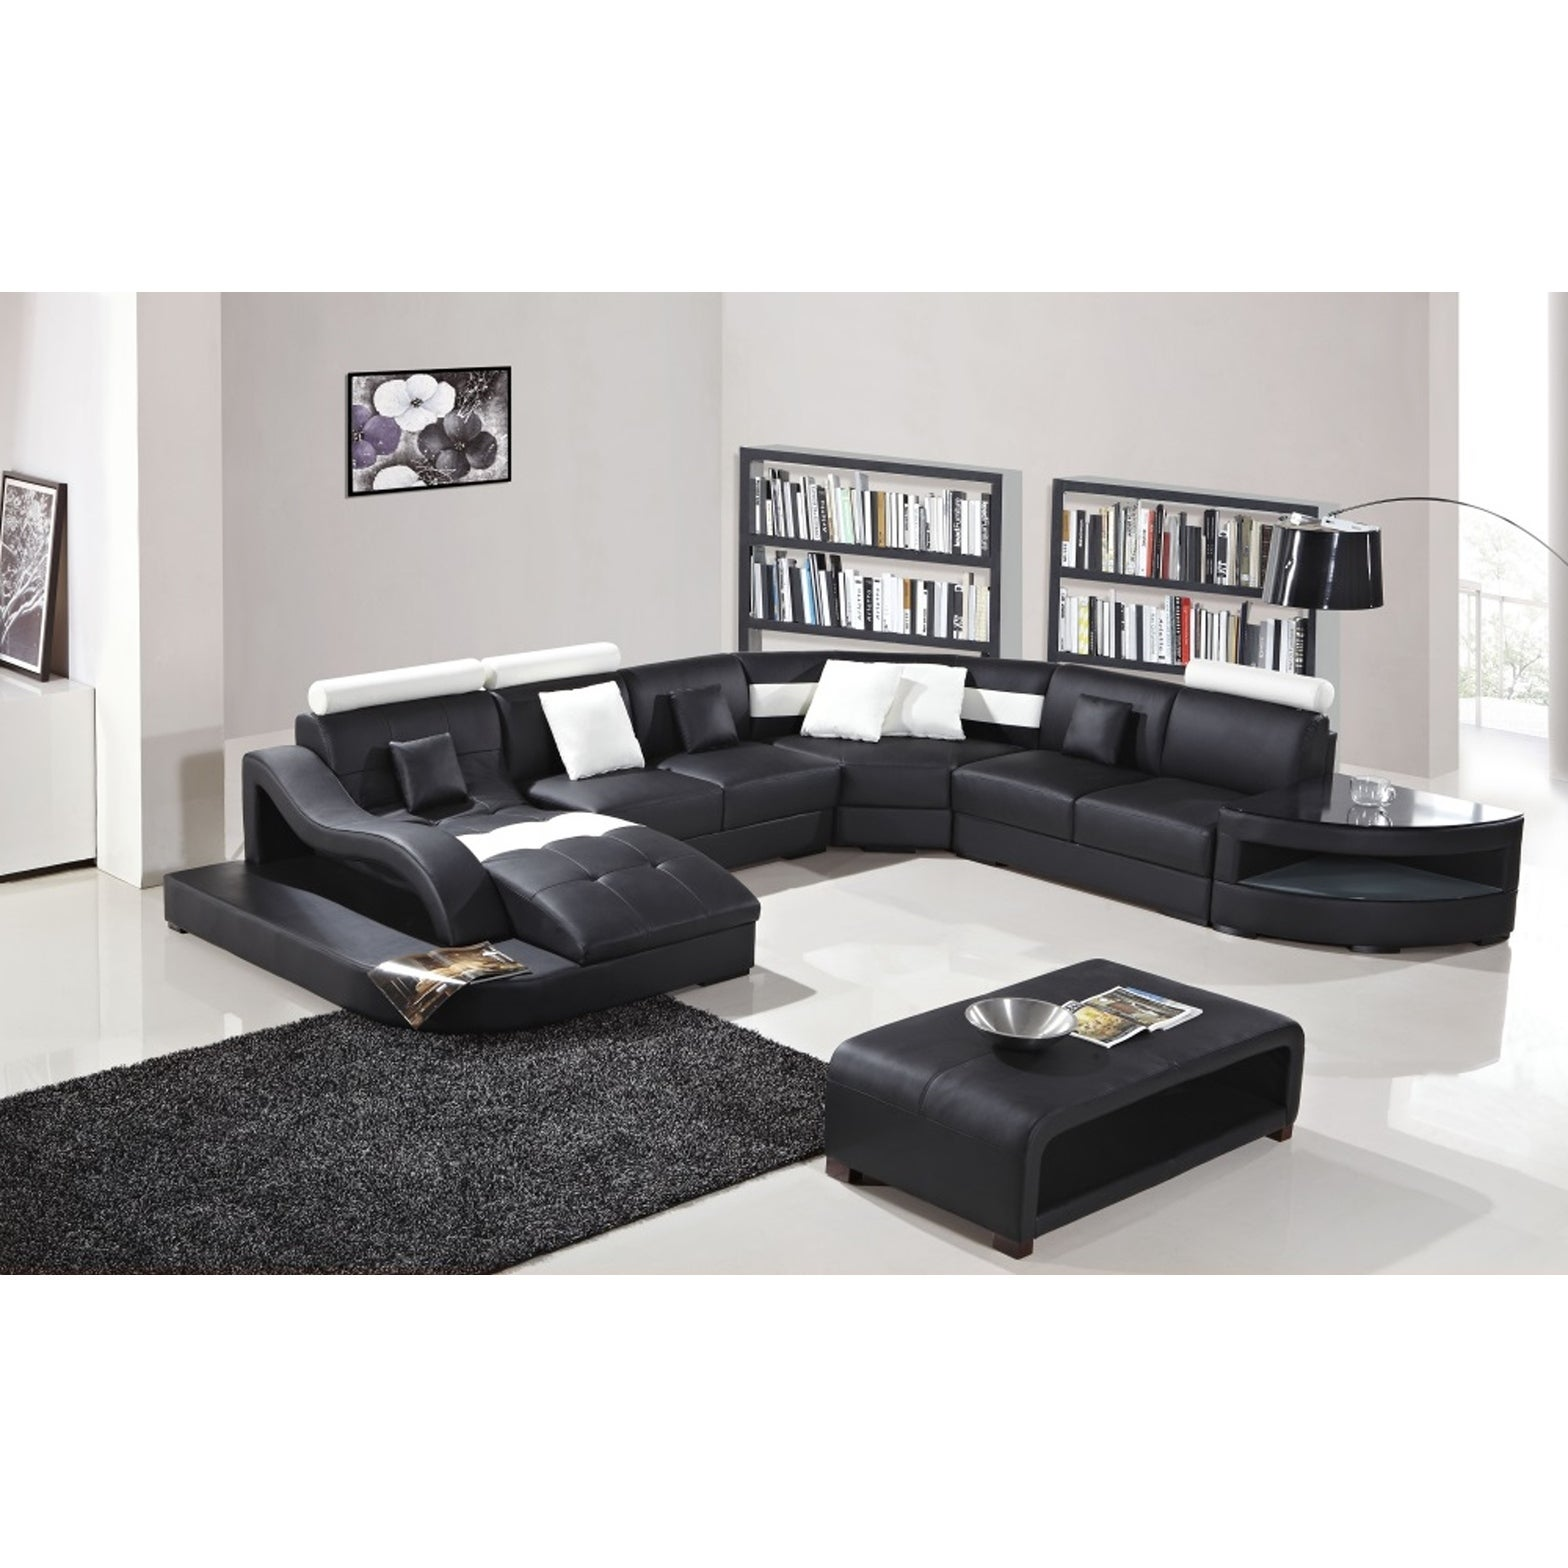 Black and White Modern Contemporary Real Leather Sectional Living Room Set  with Chaise Lounge, Storage Shelves and Coffee Table